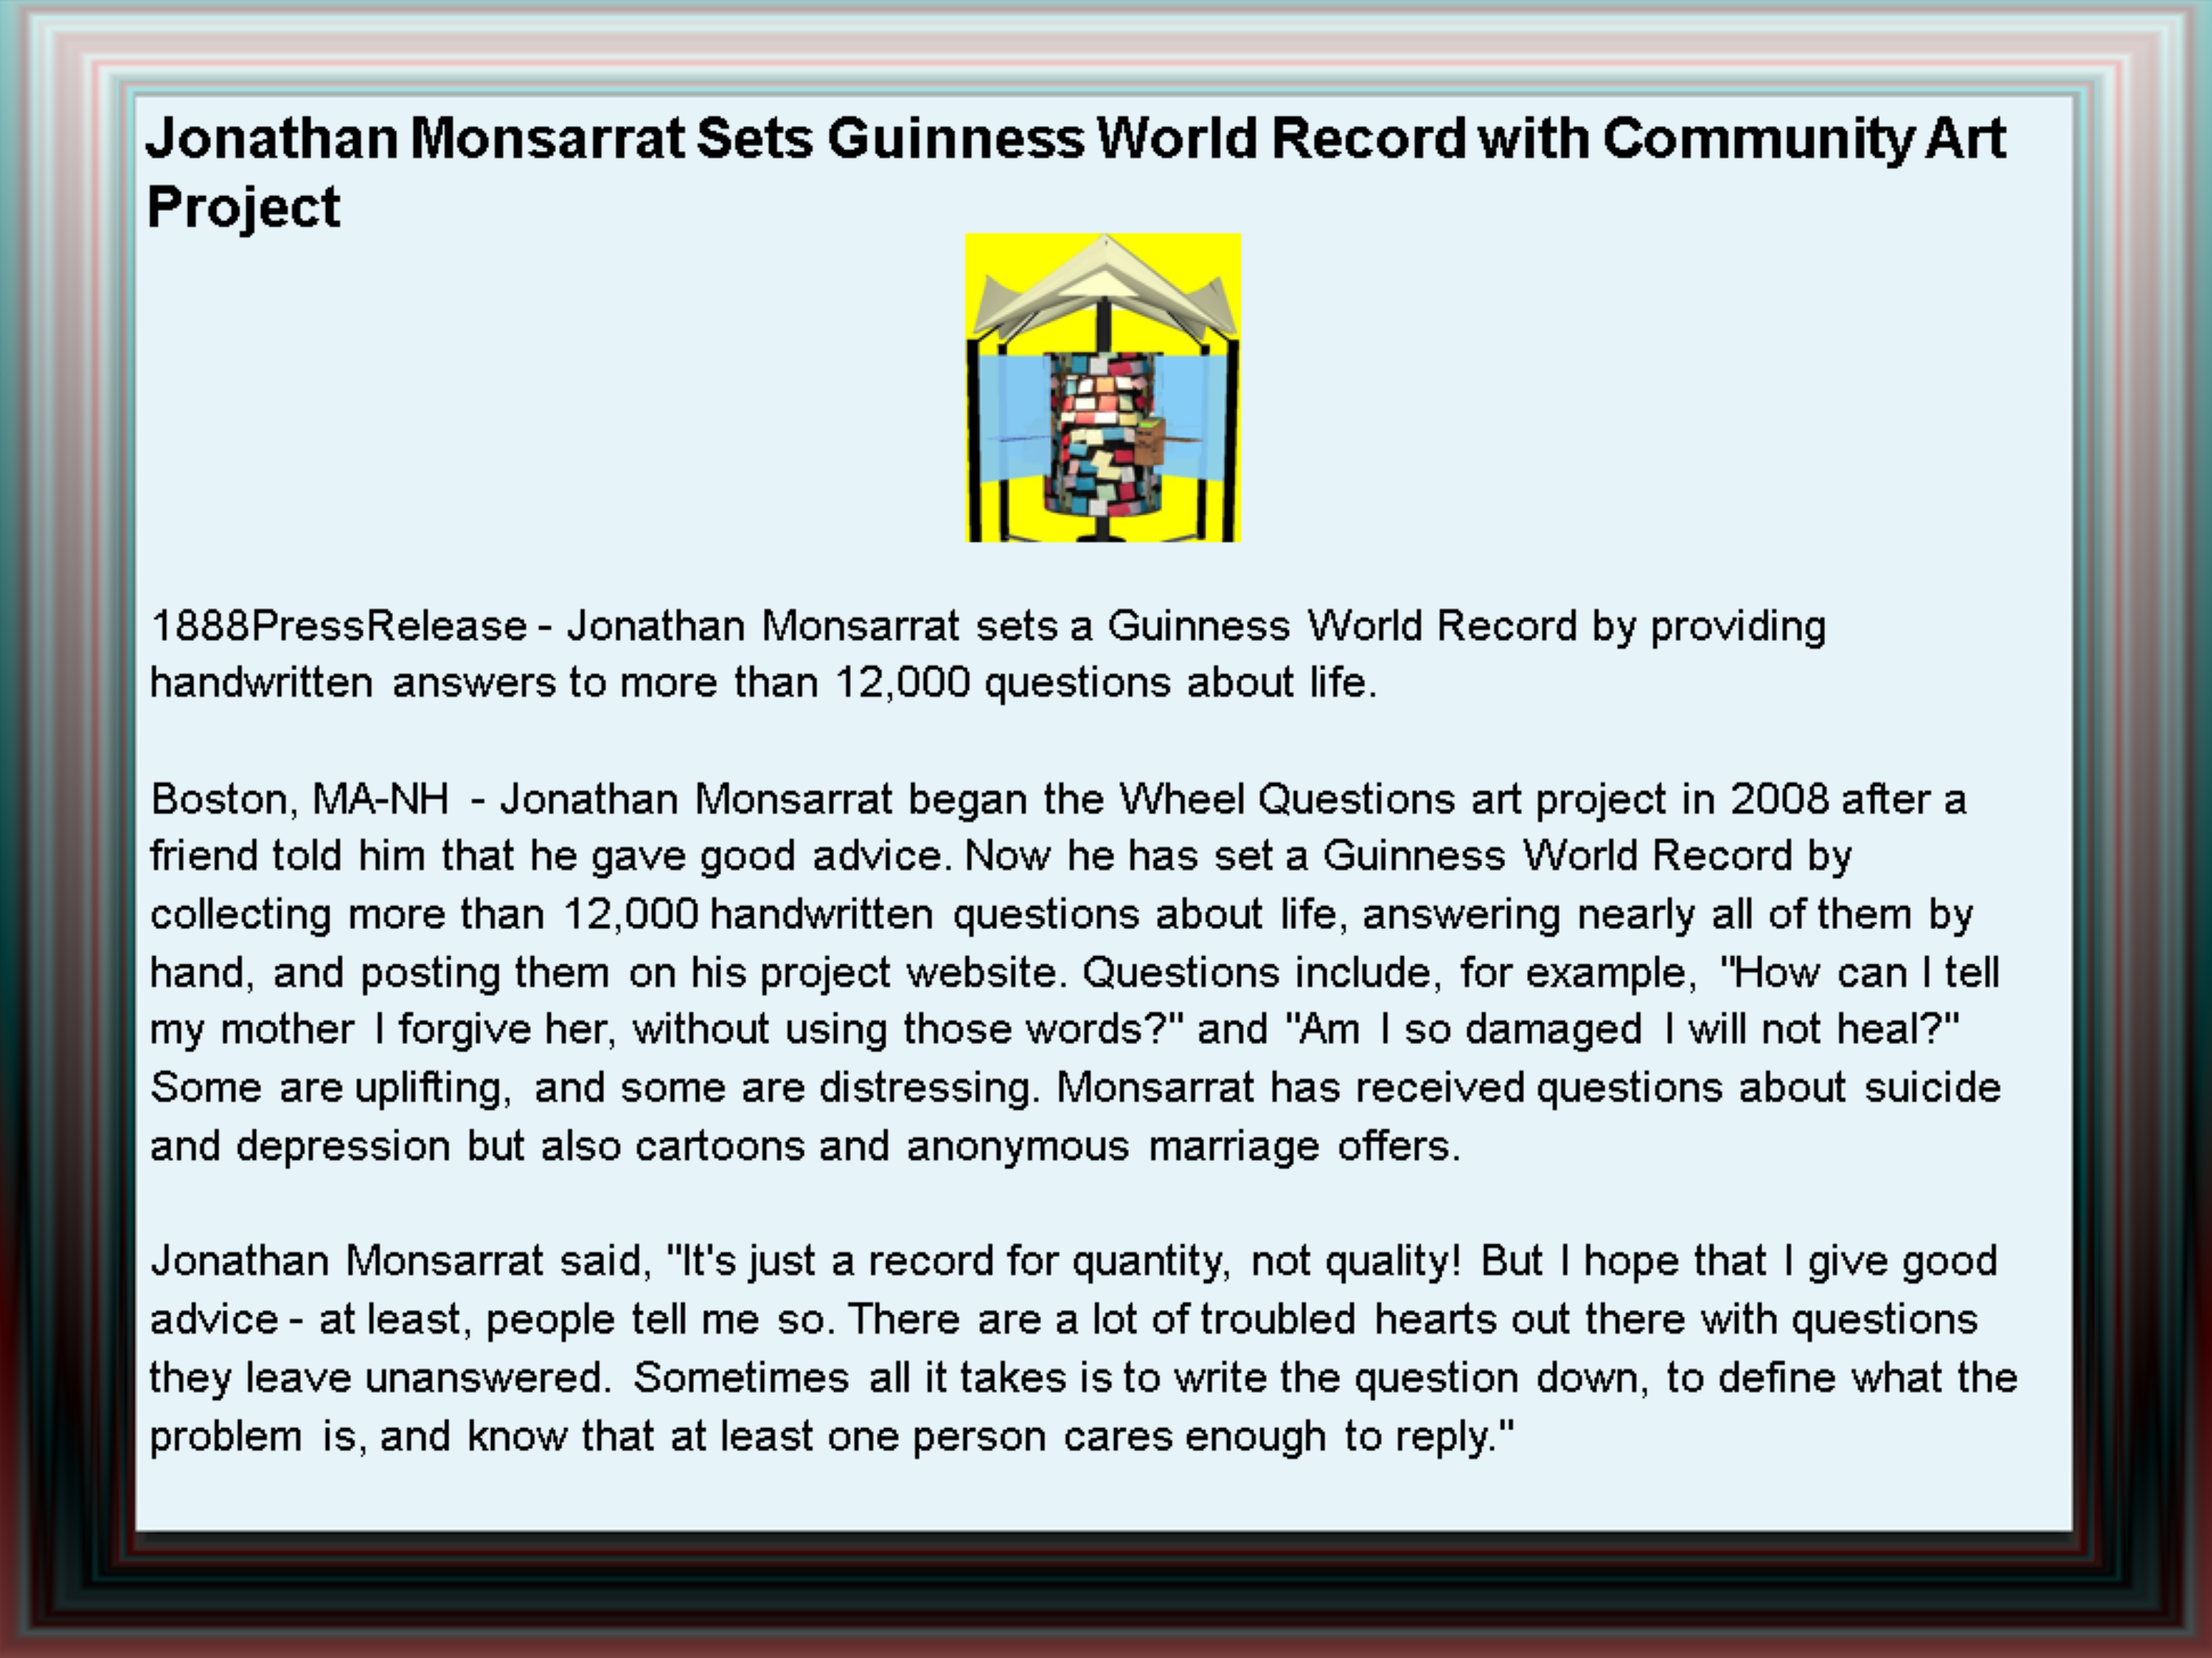 guinness world record certificate template - jonathan monsarrat sets guinness world record with